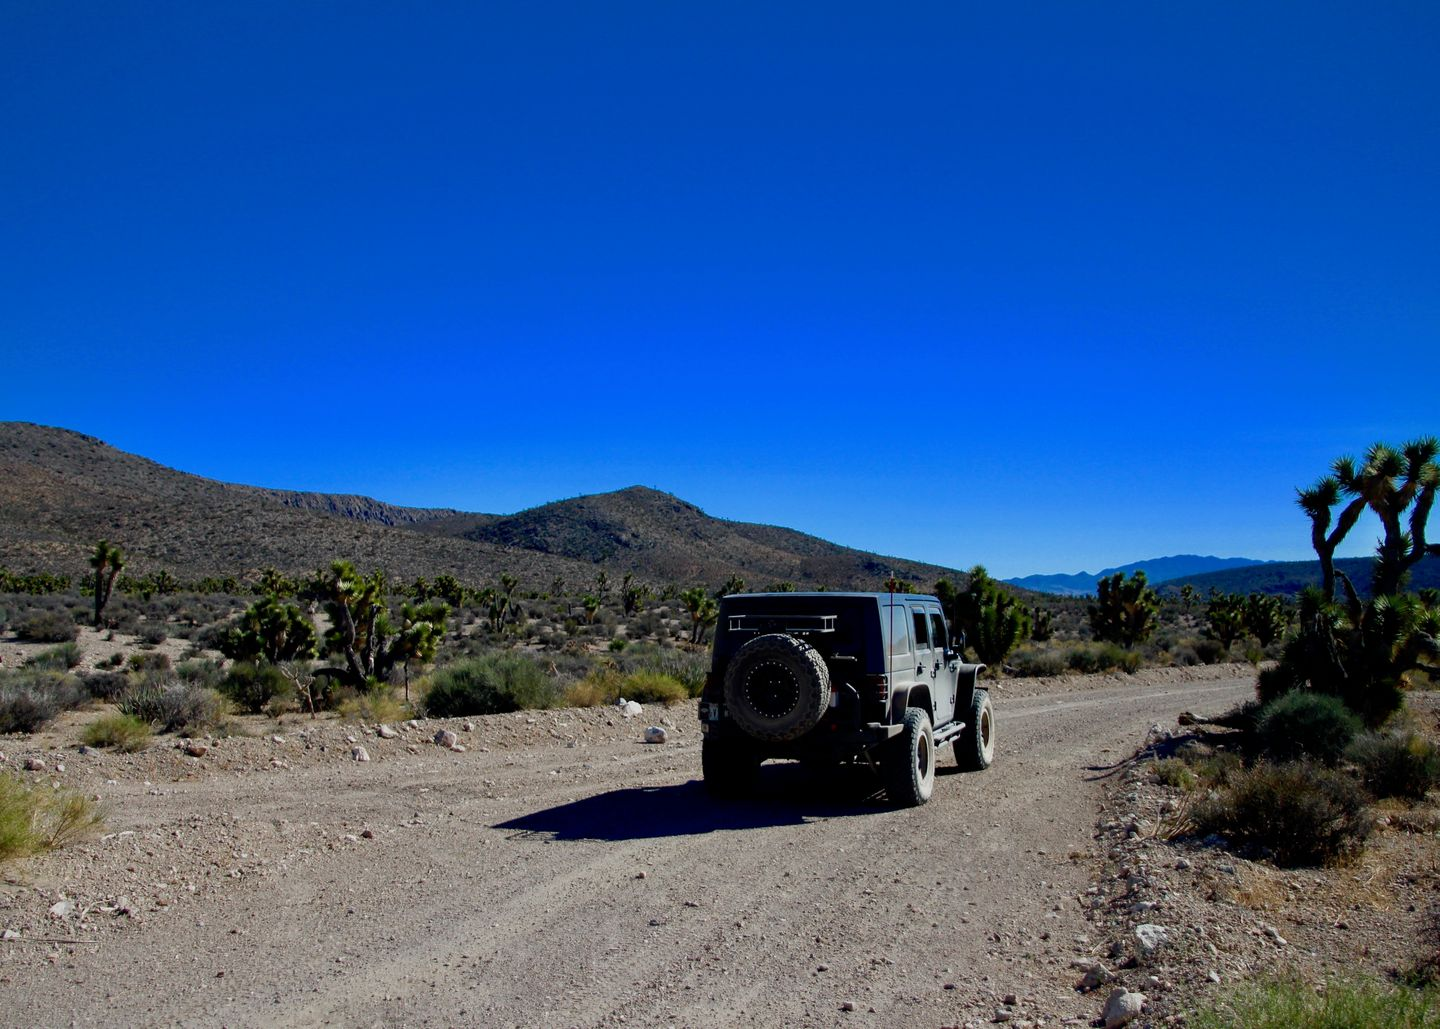 Badger Valley Loop Nevada - Waypoint 10: Stay on Main Road